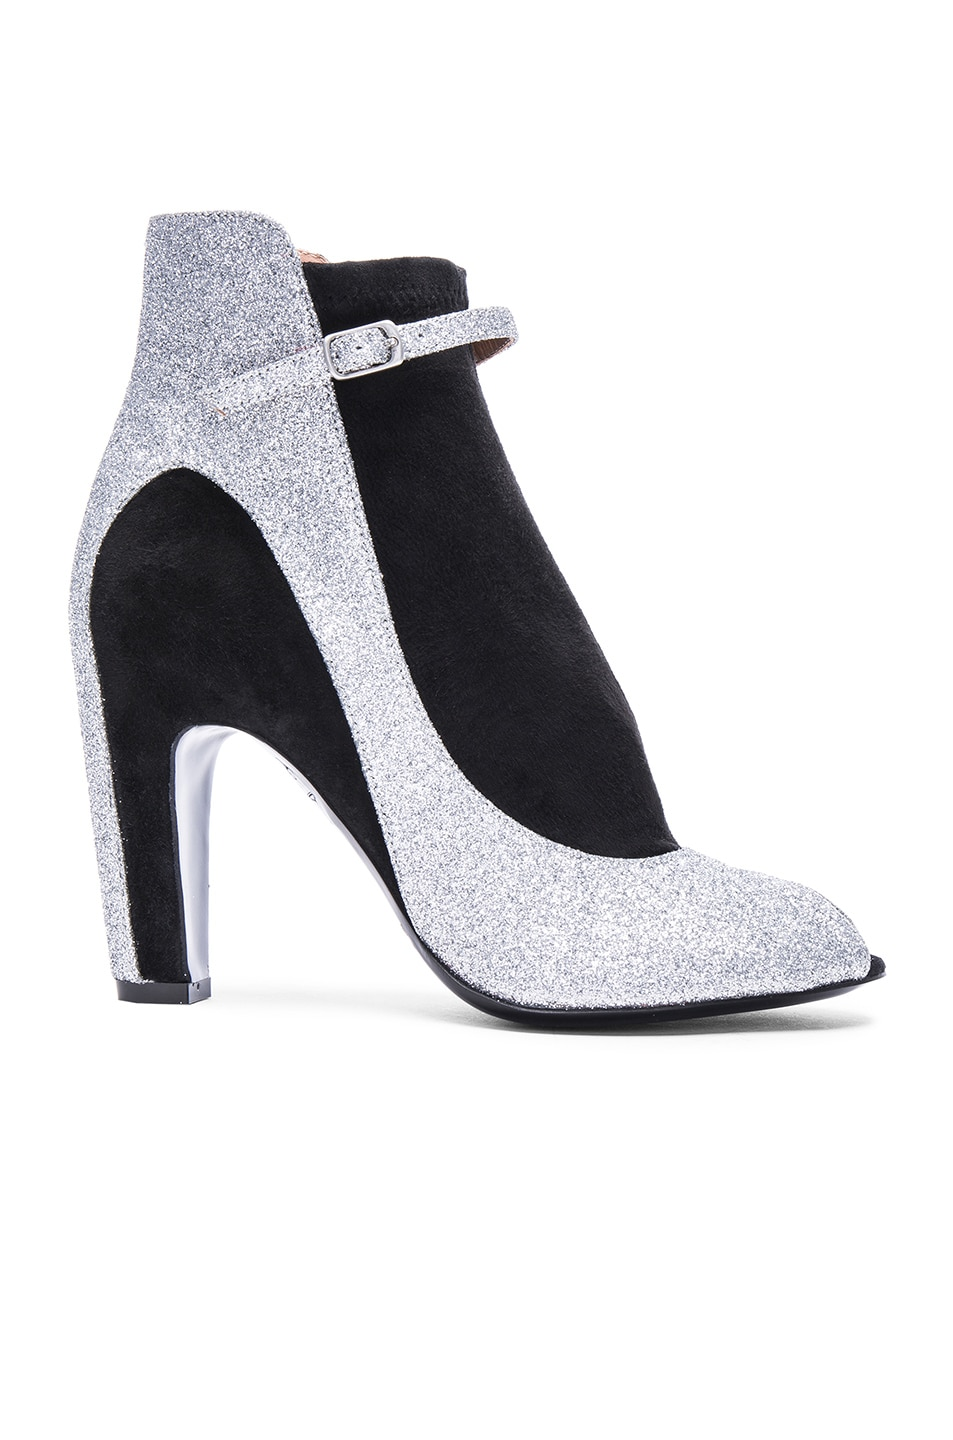 Image 1 of Maison Margiela Glitter Ankle Strap Booties in Black & Silver